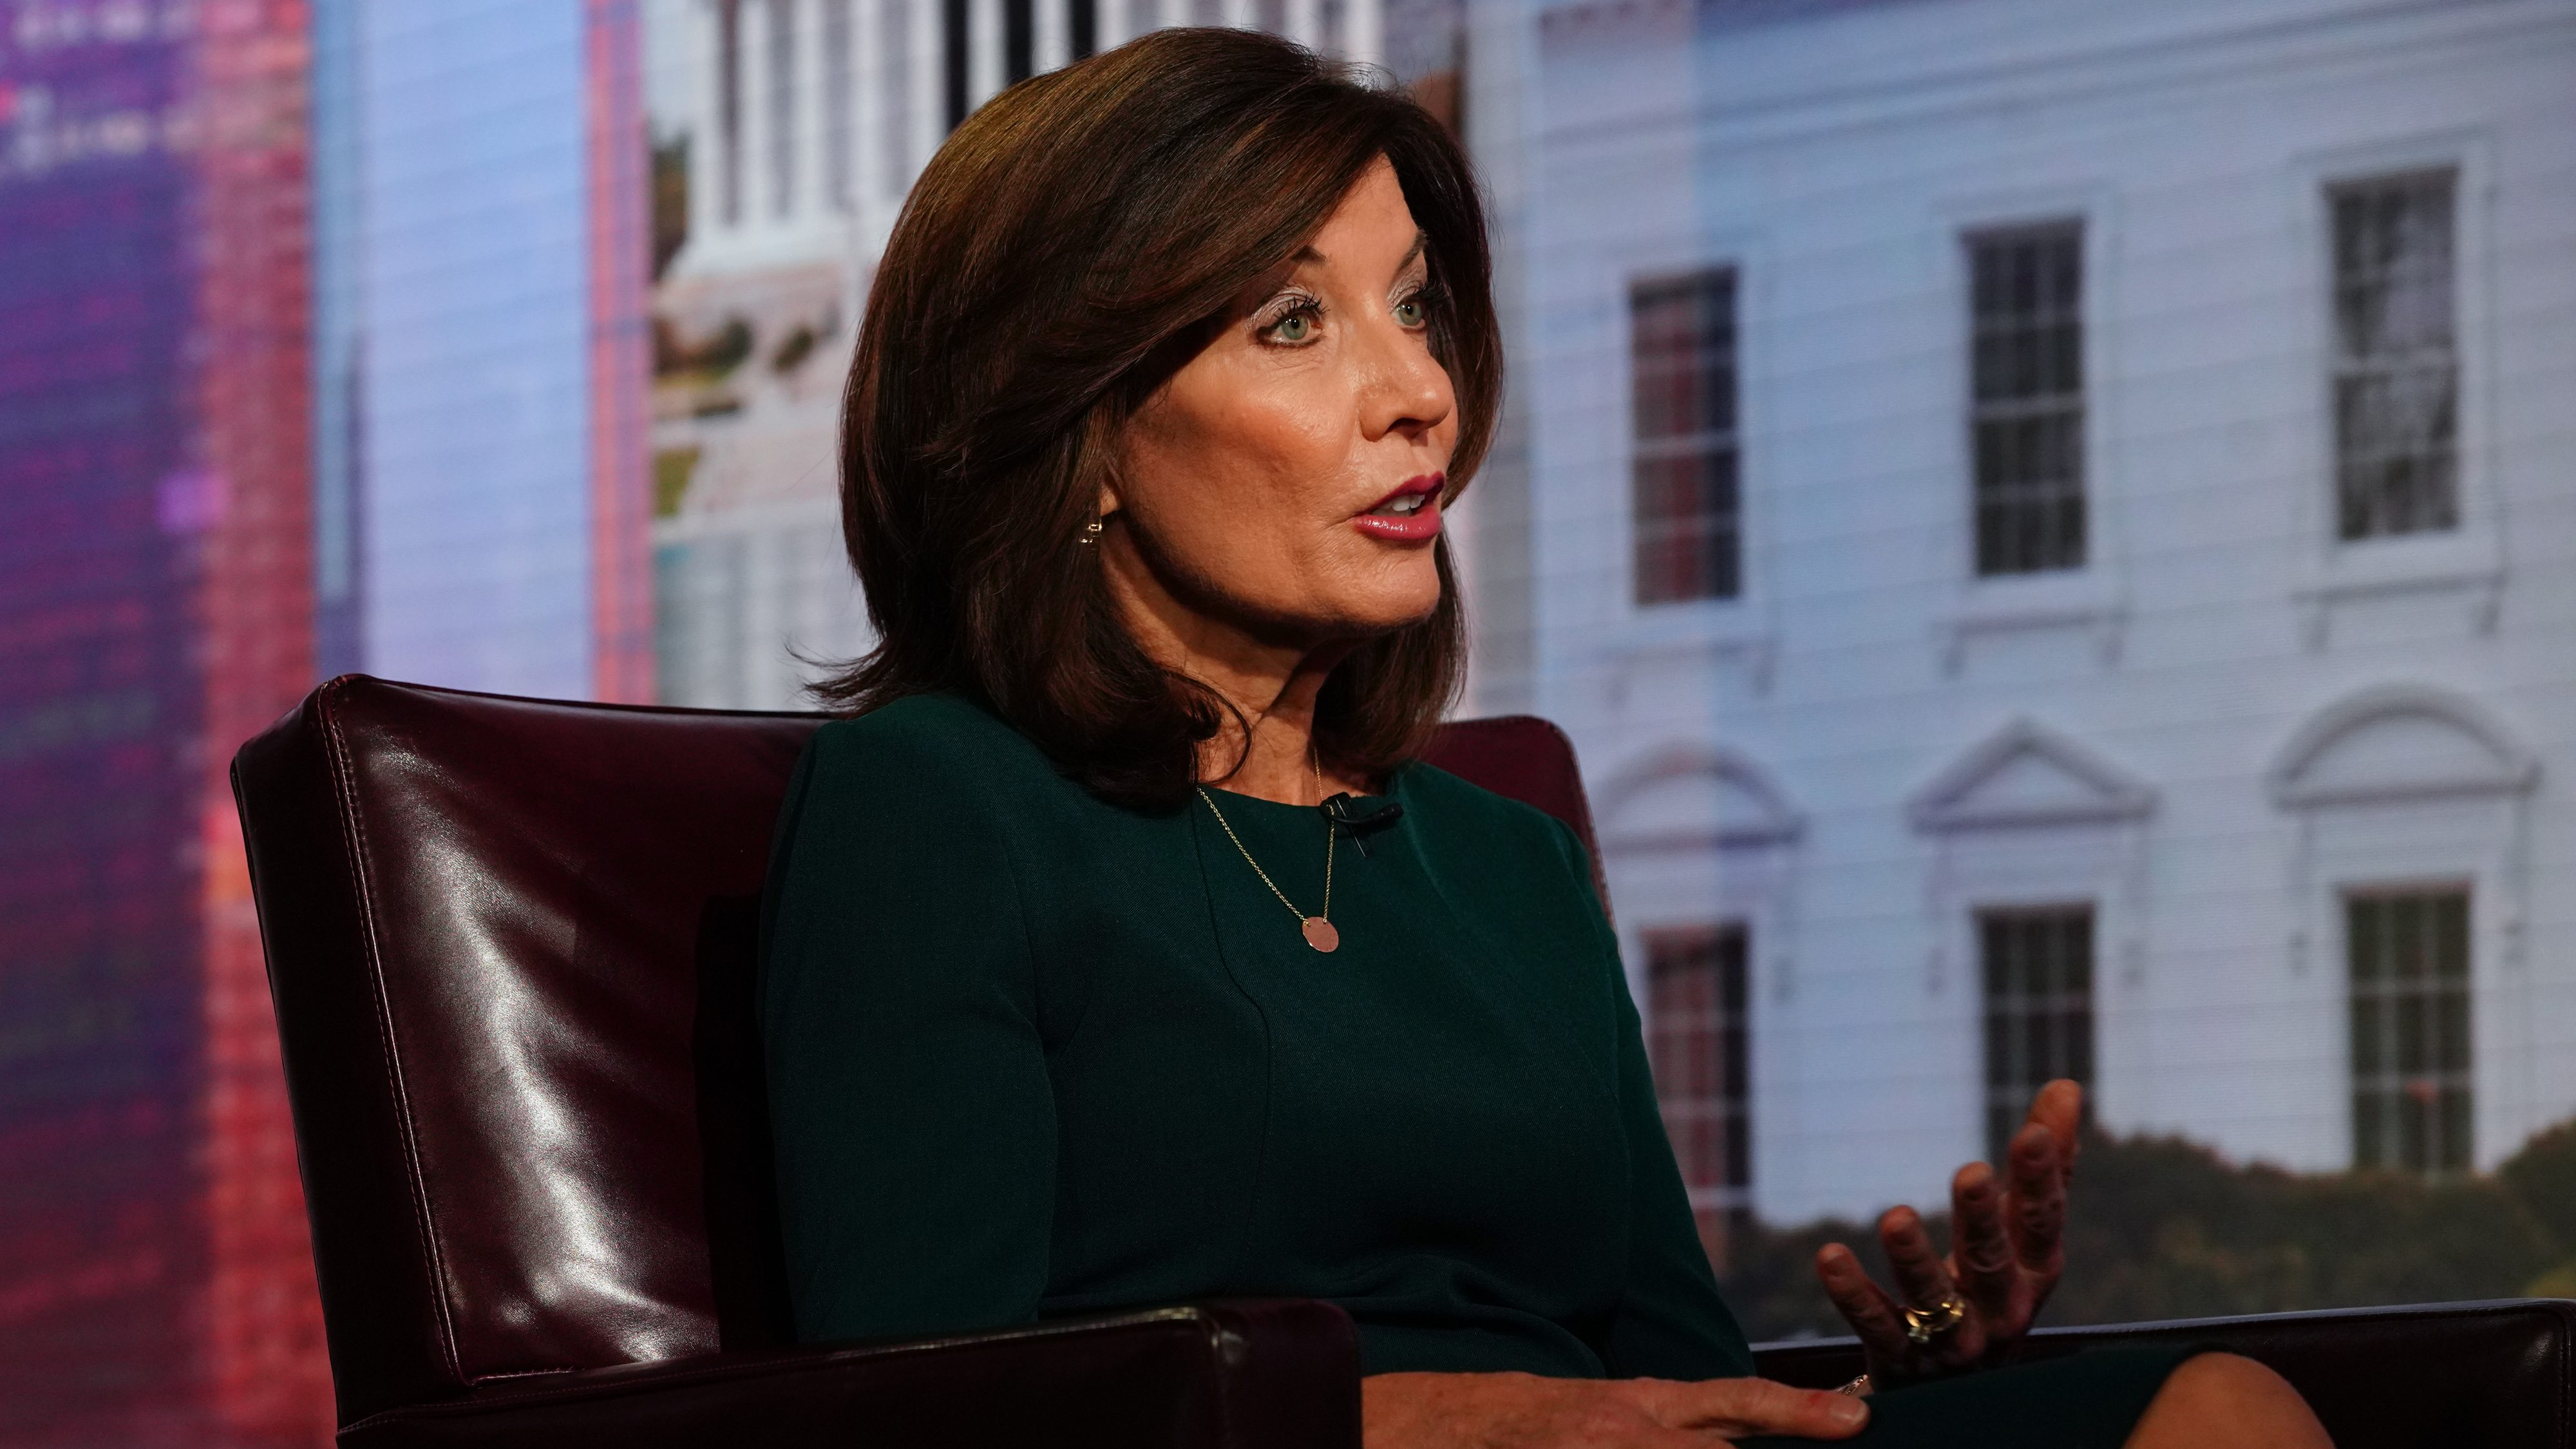 Who Is Kathy Hochul, New York's Lieutenant Governor?